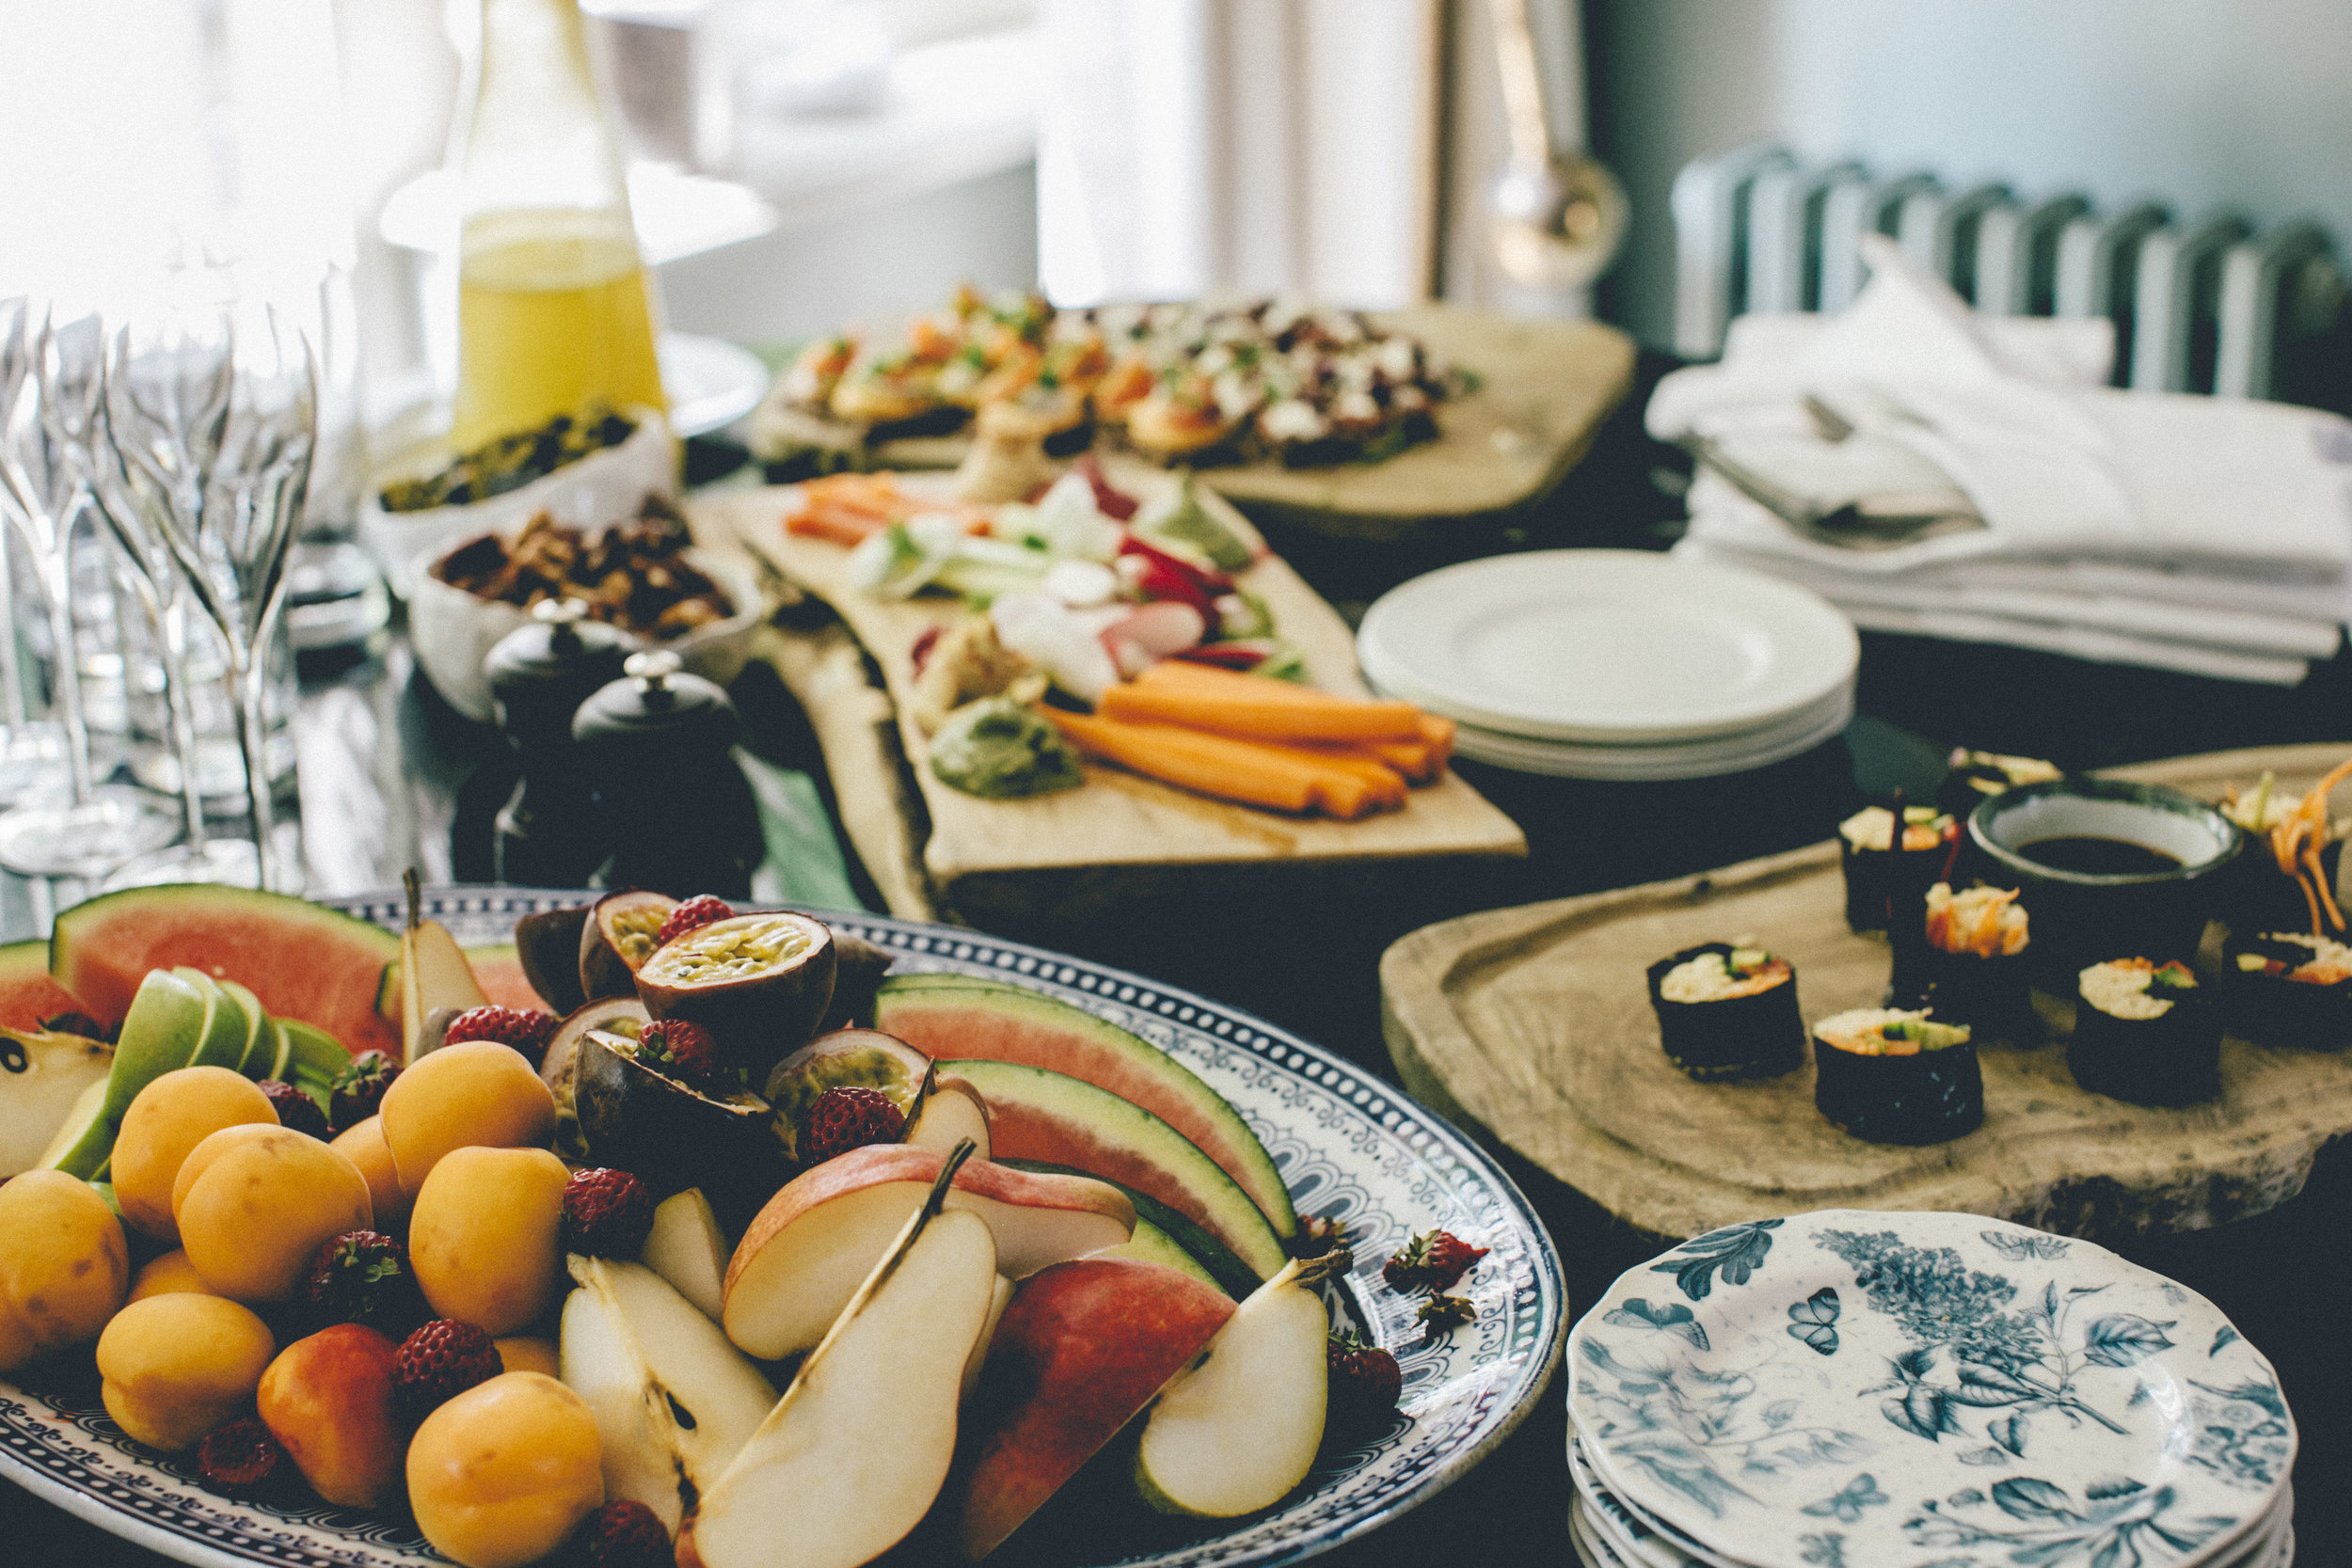 Catering - I use local organic when available with the highest quality of food and service for your special event. Private dinners, weddings, multi-course meals, fundraisers, etc…. Let me bring the fine dining to you!